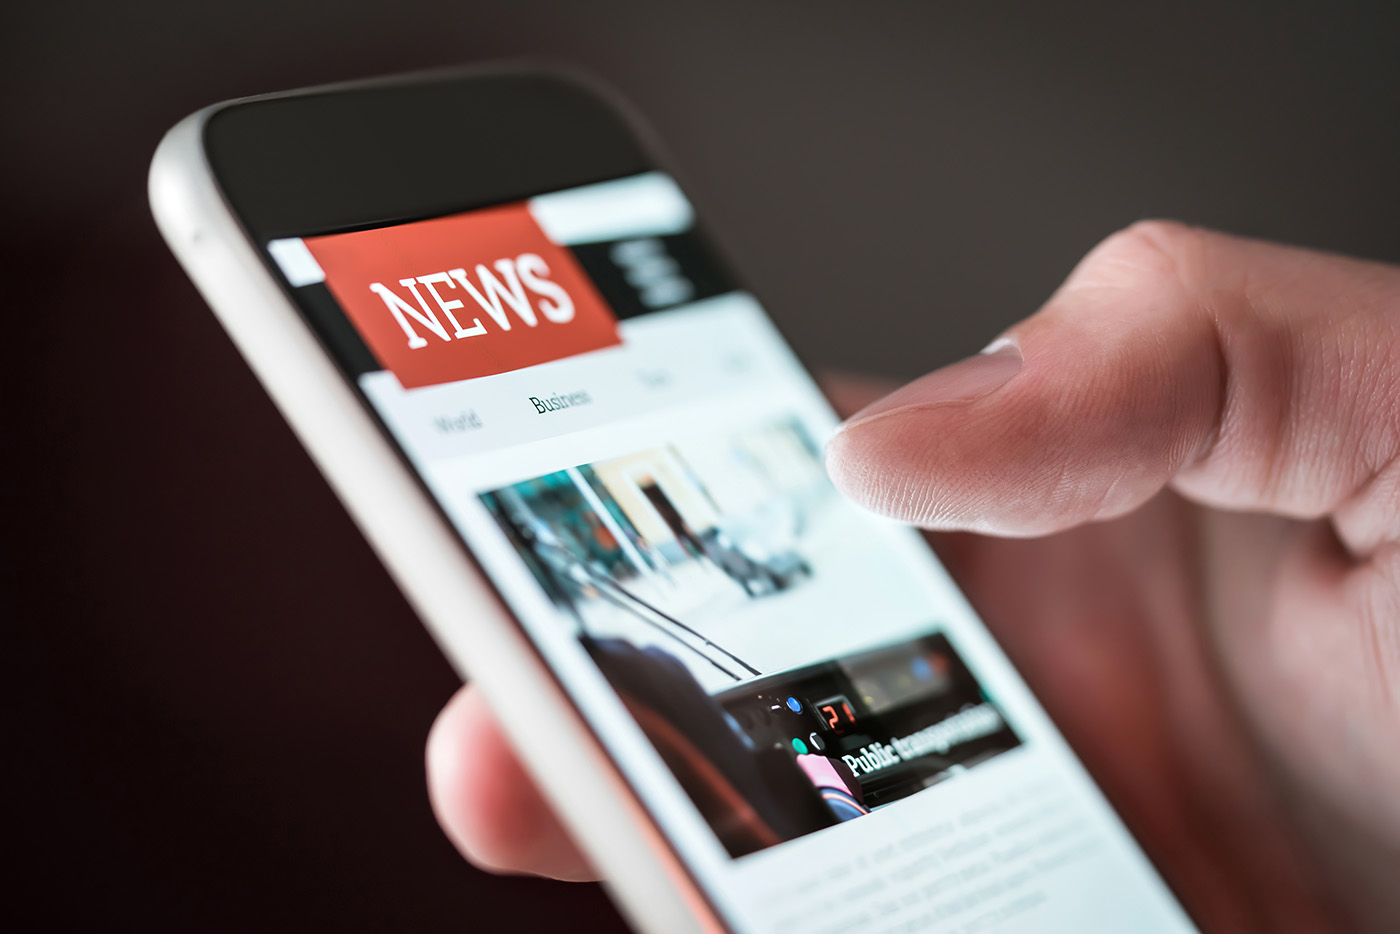 Mobile news application in smartphone. Man reading online news on website with cellphone. Person browsing latest articles on the internet. Light from phone screen.